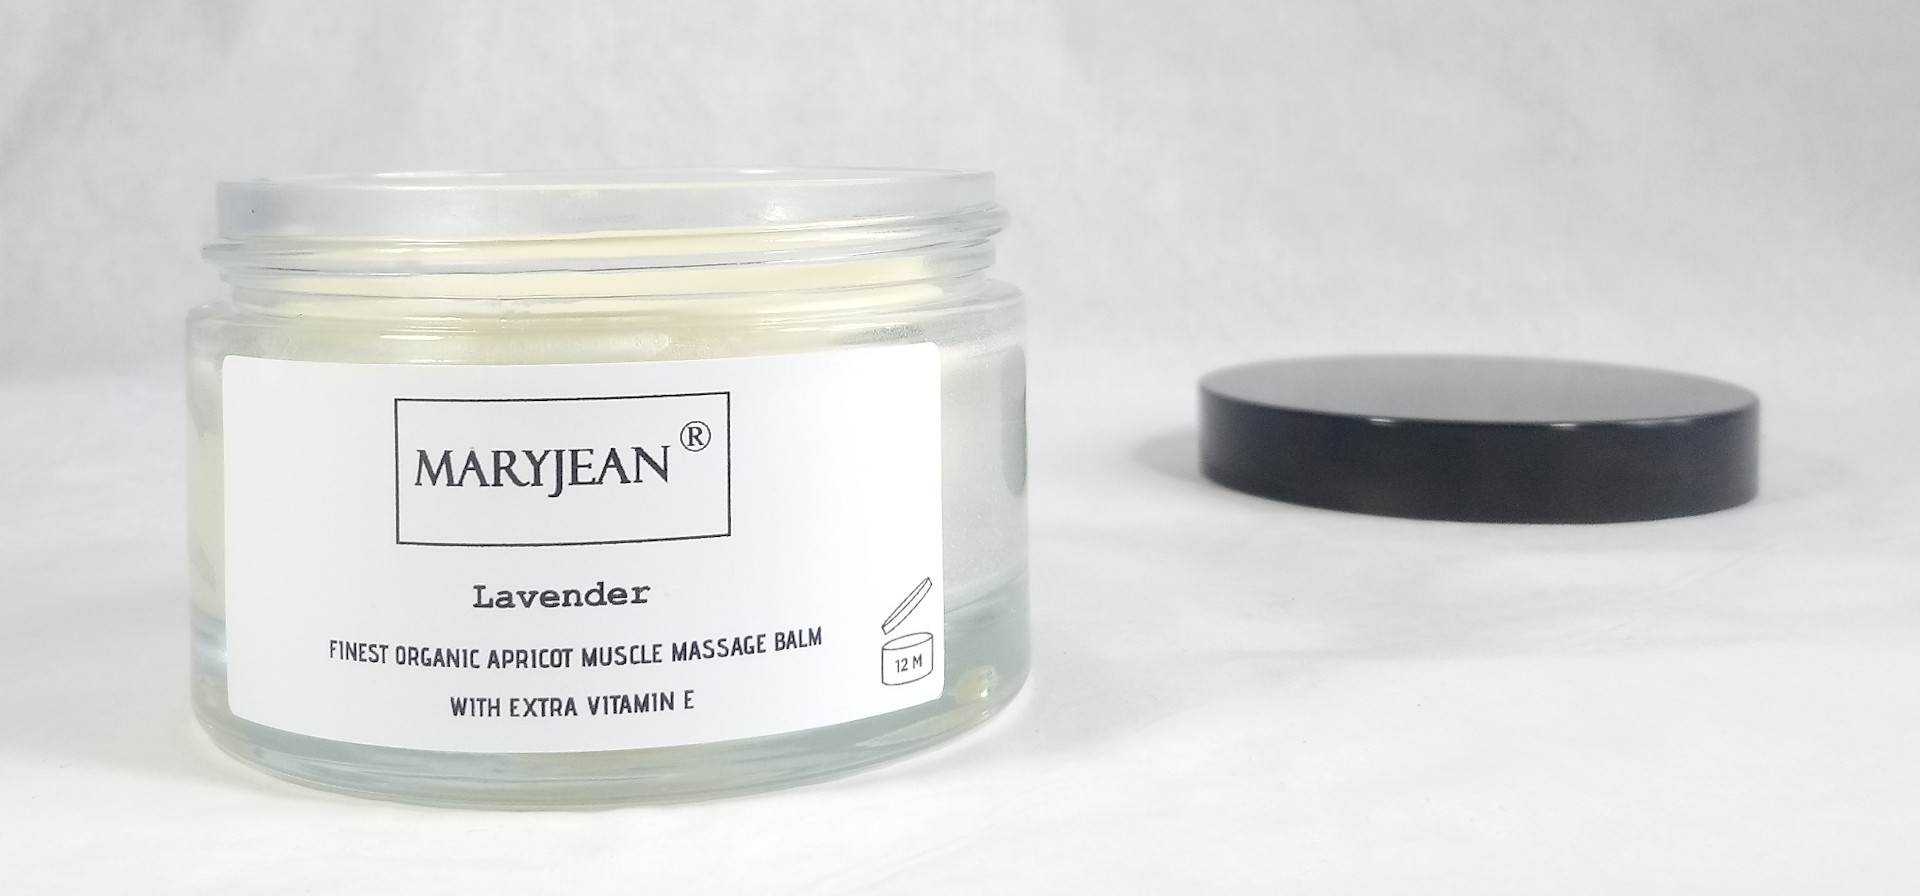 Organic Apricot Muscle Massage Lavender Balm With Extra Vitamin E en_GB